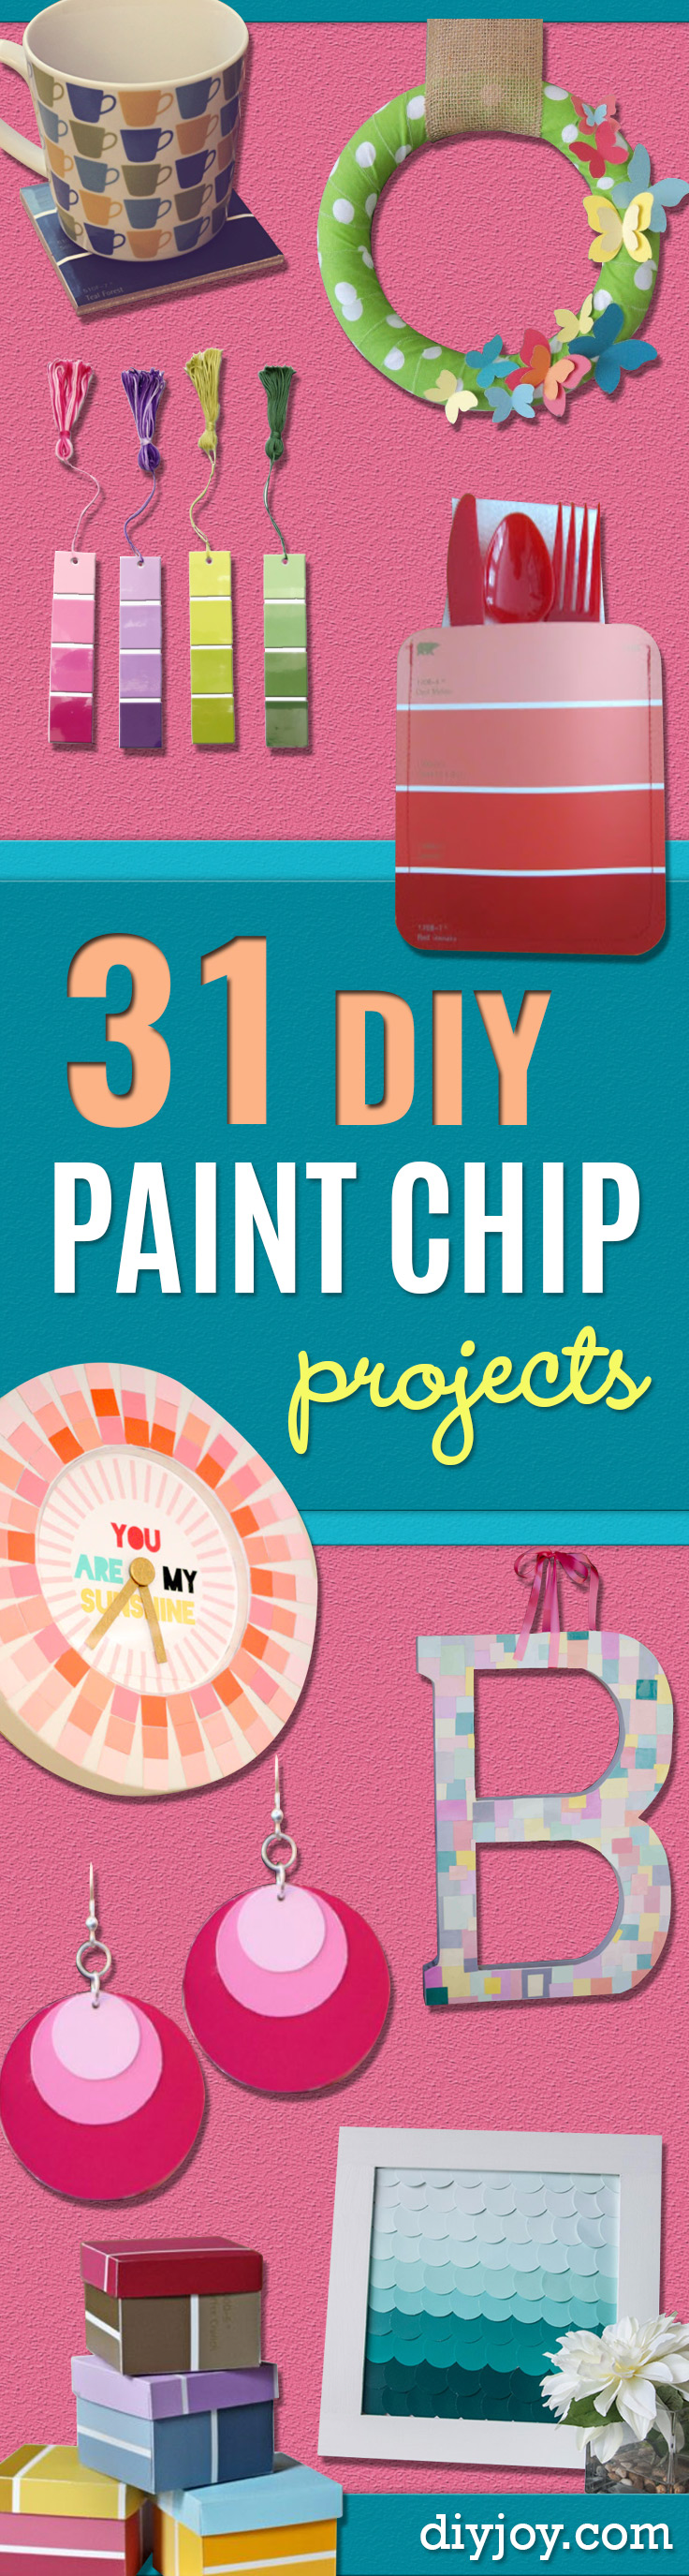 DIY Projects Made With Paint Chips - Best Creative Crafts, Easy DYI Projects You Can Make With Paint Chips - Cool Paint Chip Crafts and Project Tutorials - Crafty DIY Home Decor Ideas That Make Awesome DIY Gifts and Christmas Presents for Friends and Family